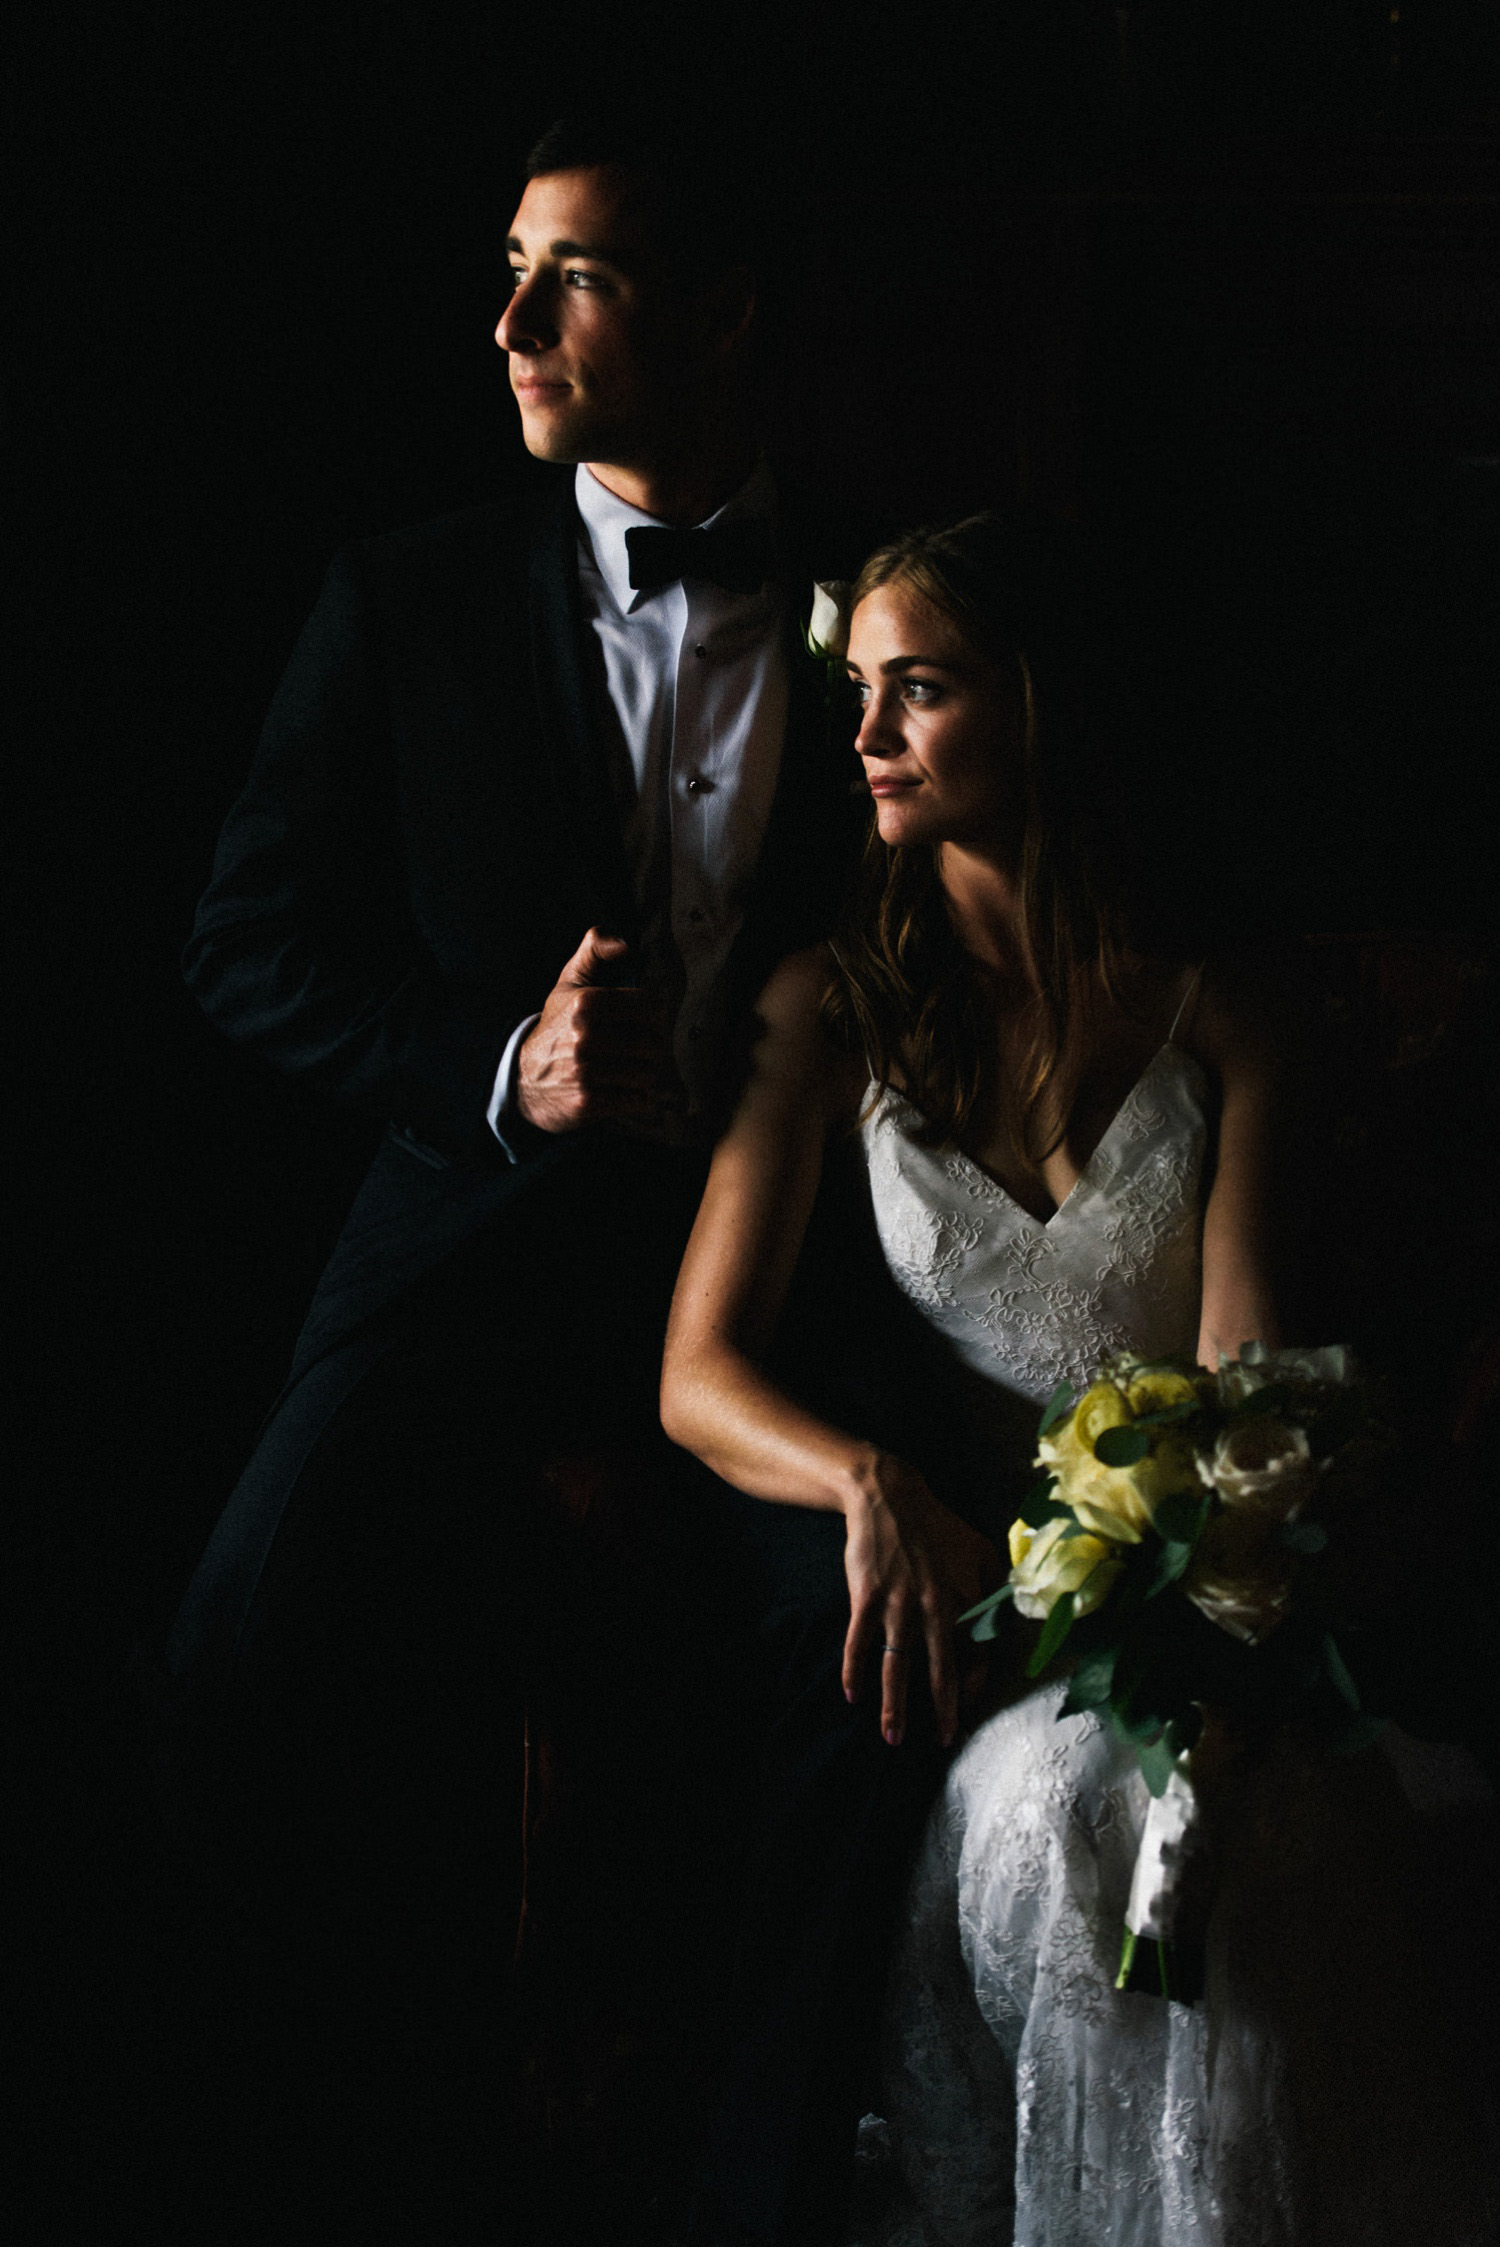 couple stare out of winder in classic portrait - montecito wedding photography